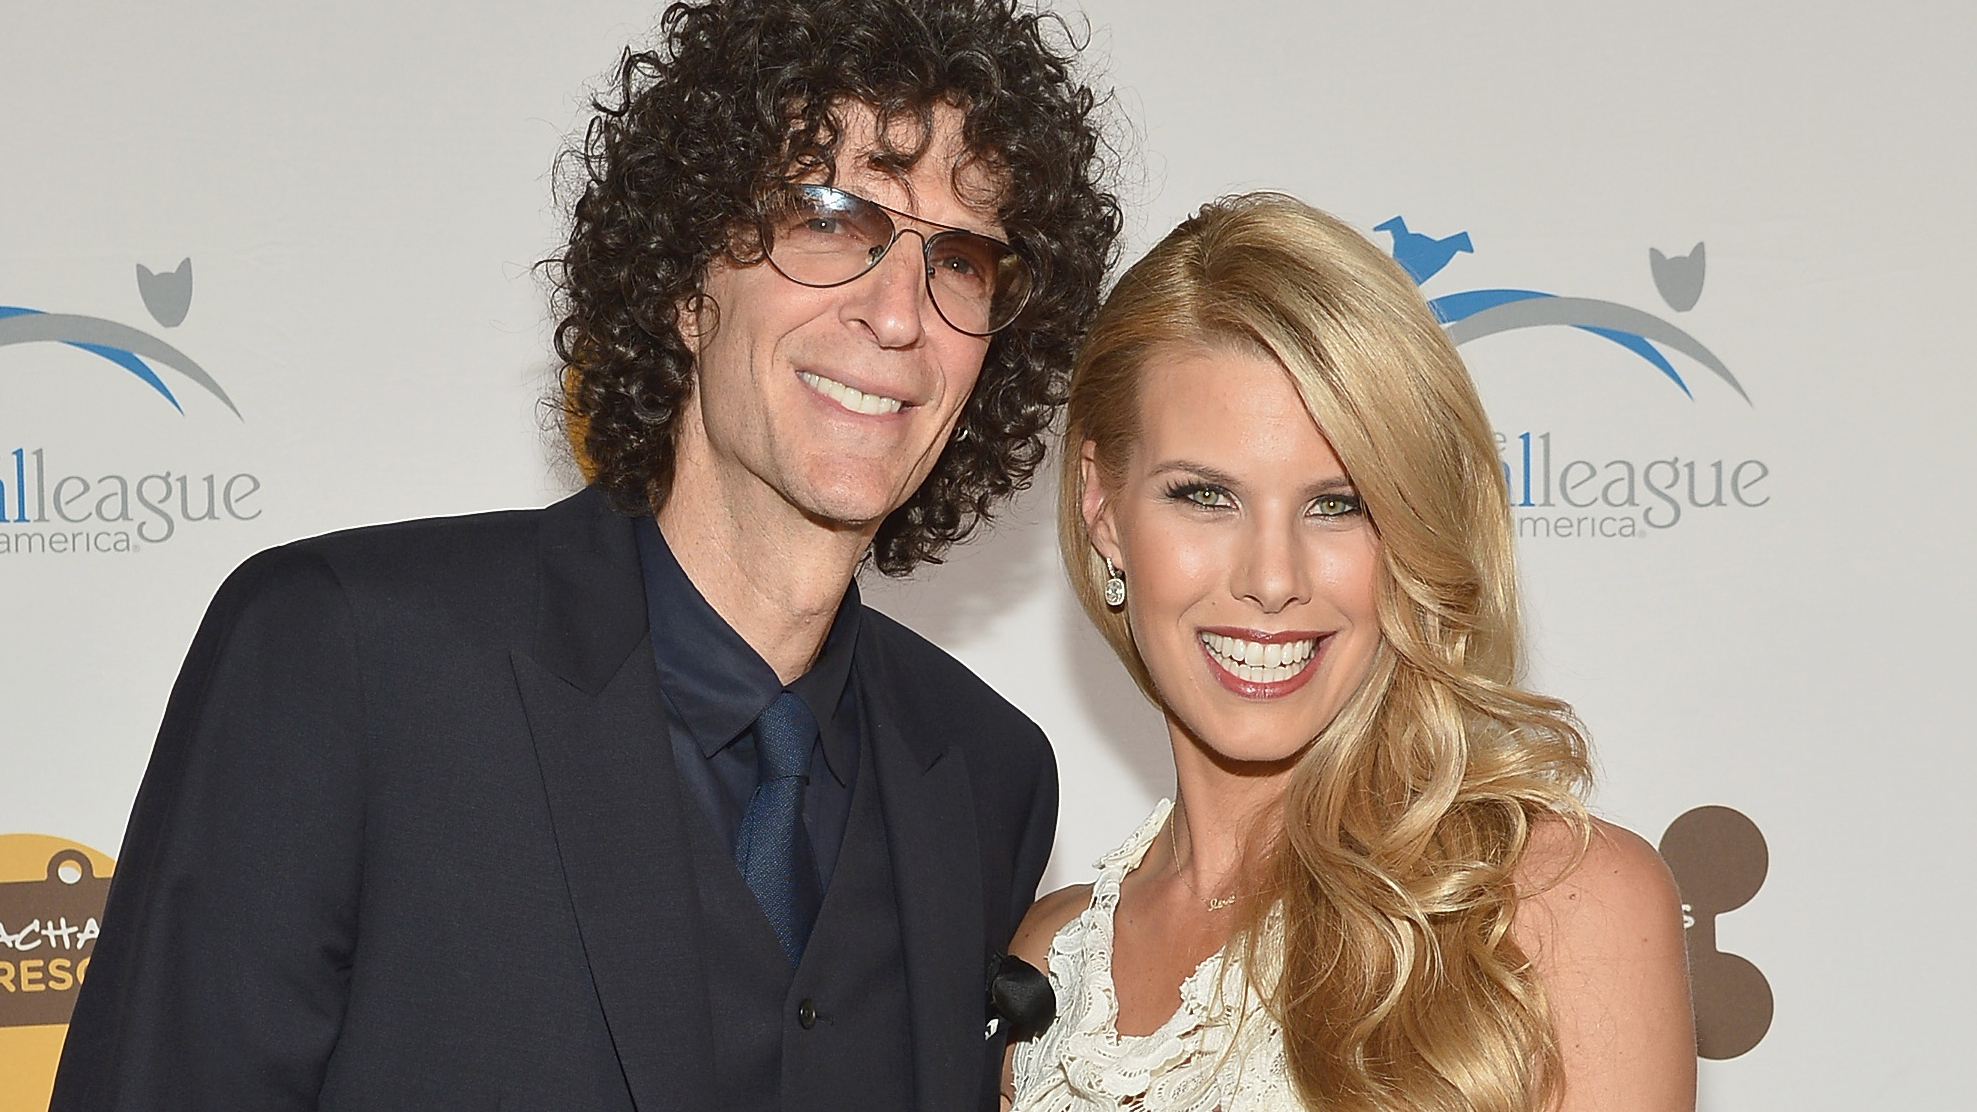 PHOTO: Howard Stern (L) and Beth Ostrosky Stern attend the 2013 Animal League America Celebrity gala at The Waldorf Astoria on Nov. 22, 2013 in New York City.